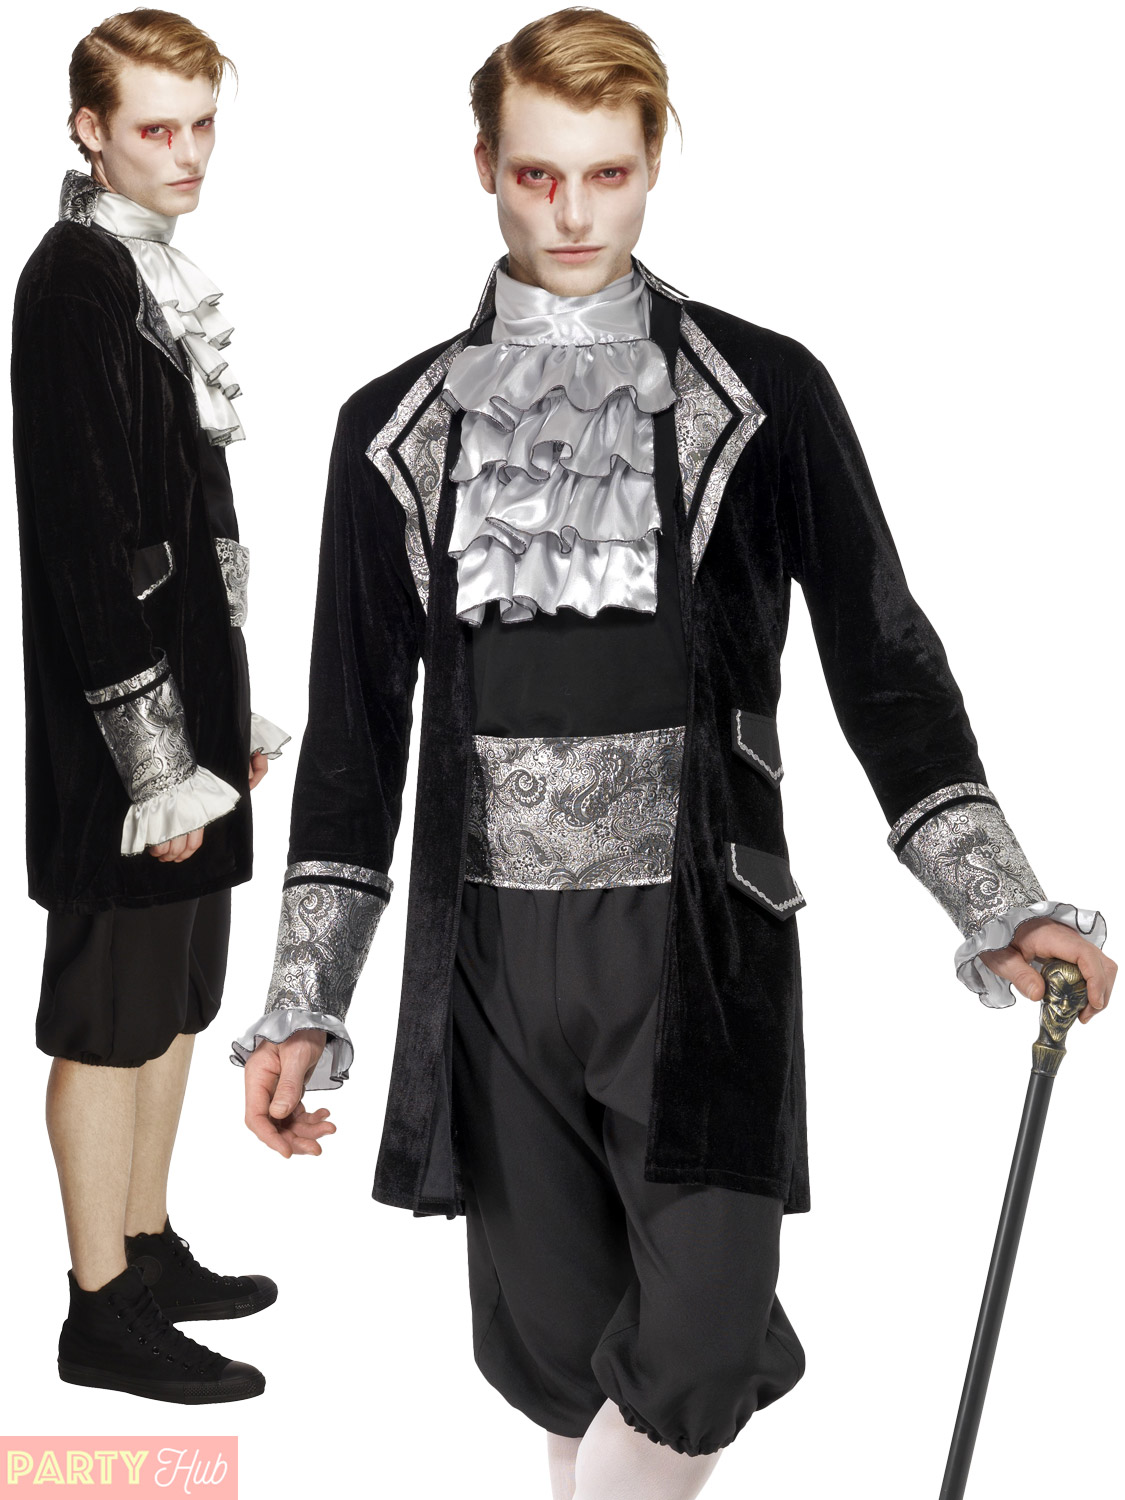 Mens Fever Baroque Vampire Costume Adult Masquerade Halloween Fancy Dress Outfit | eBay